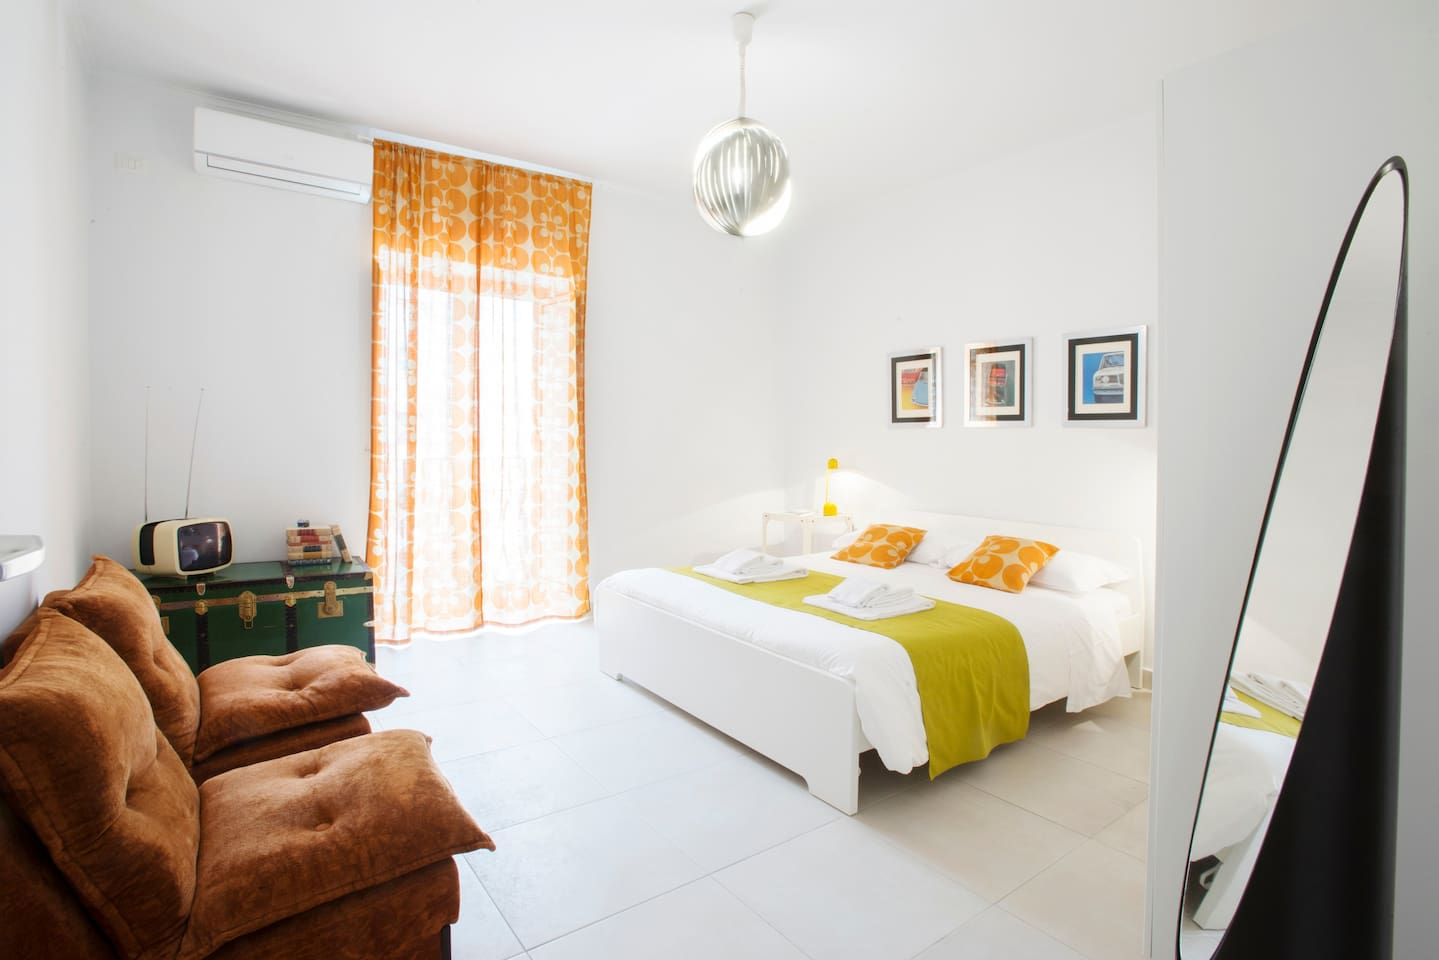 We can accommodate up to 6 people. 3 double bedrooms, 2 bathrooms, a fully equipped kitchen and living room. Vintage items from our collection make it unique and special.